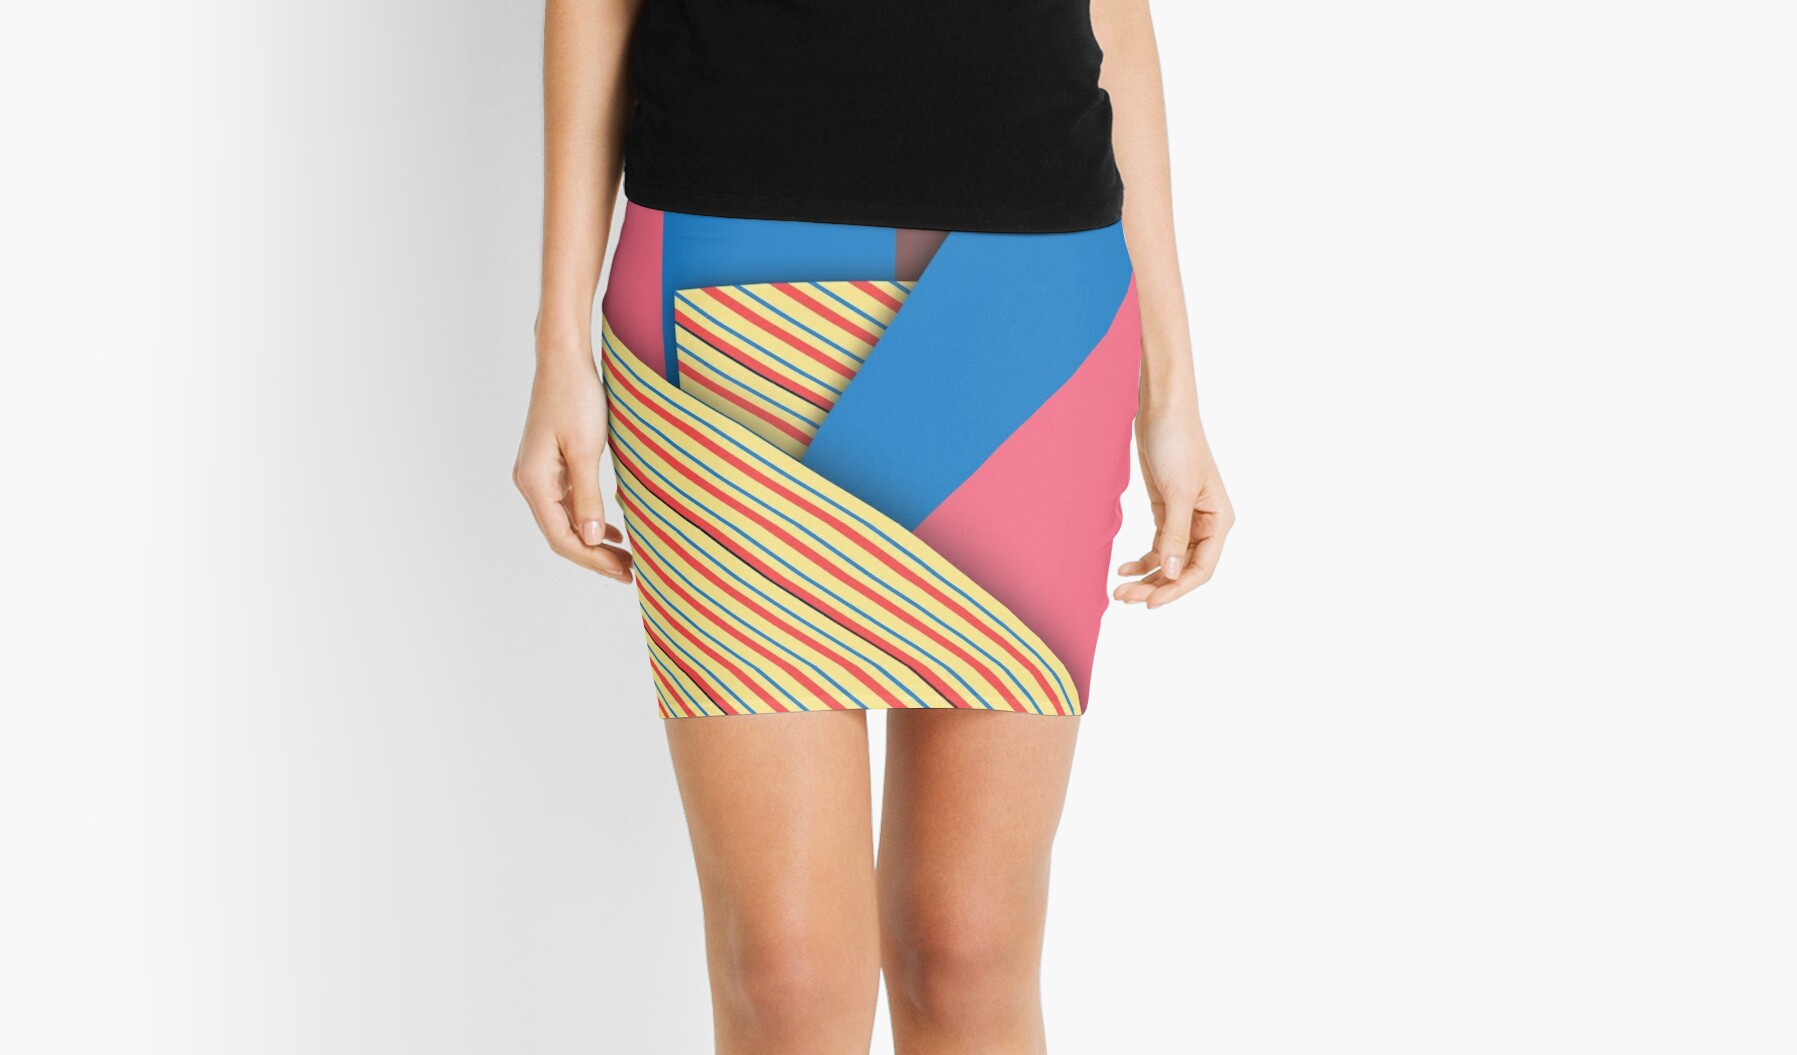 Modern Funk Striped Abstract Design by Melissa Park